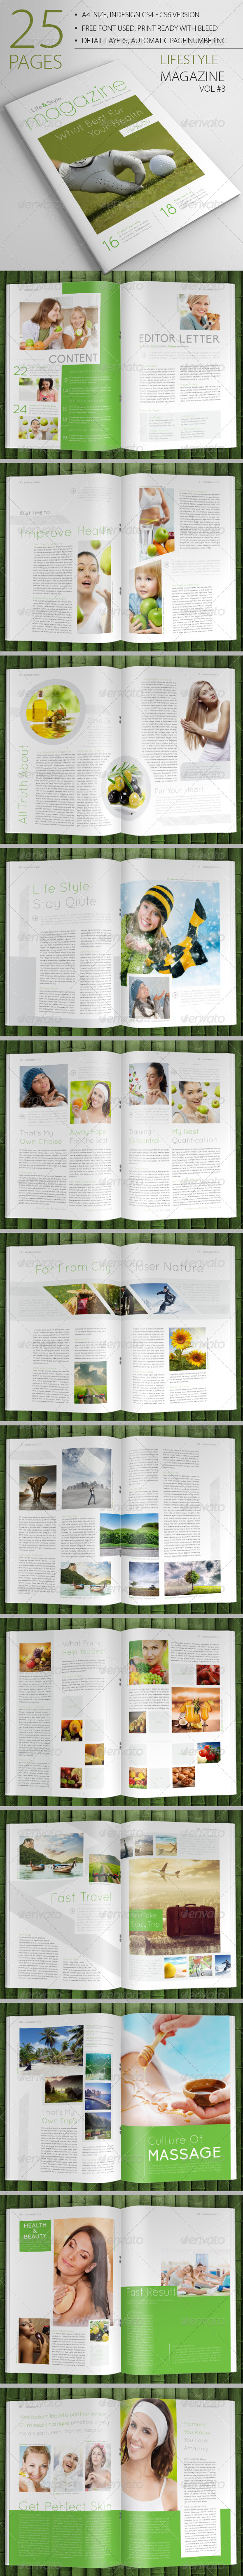 25 Pages Lifestyle Magazine Vol3 - Magazines Print Templates